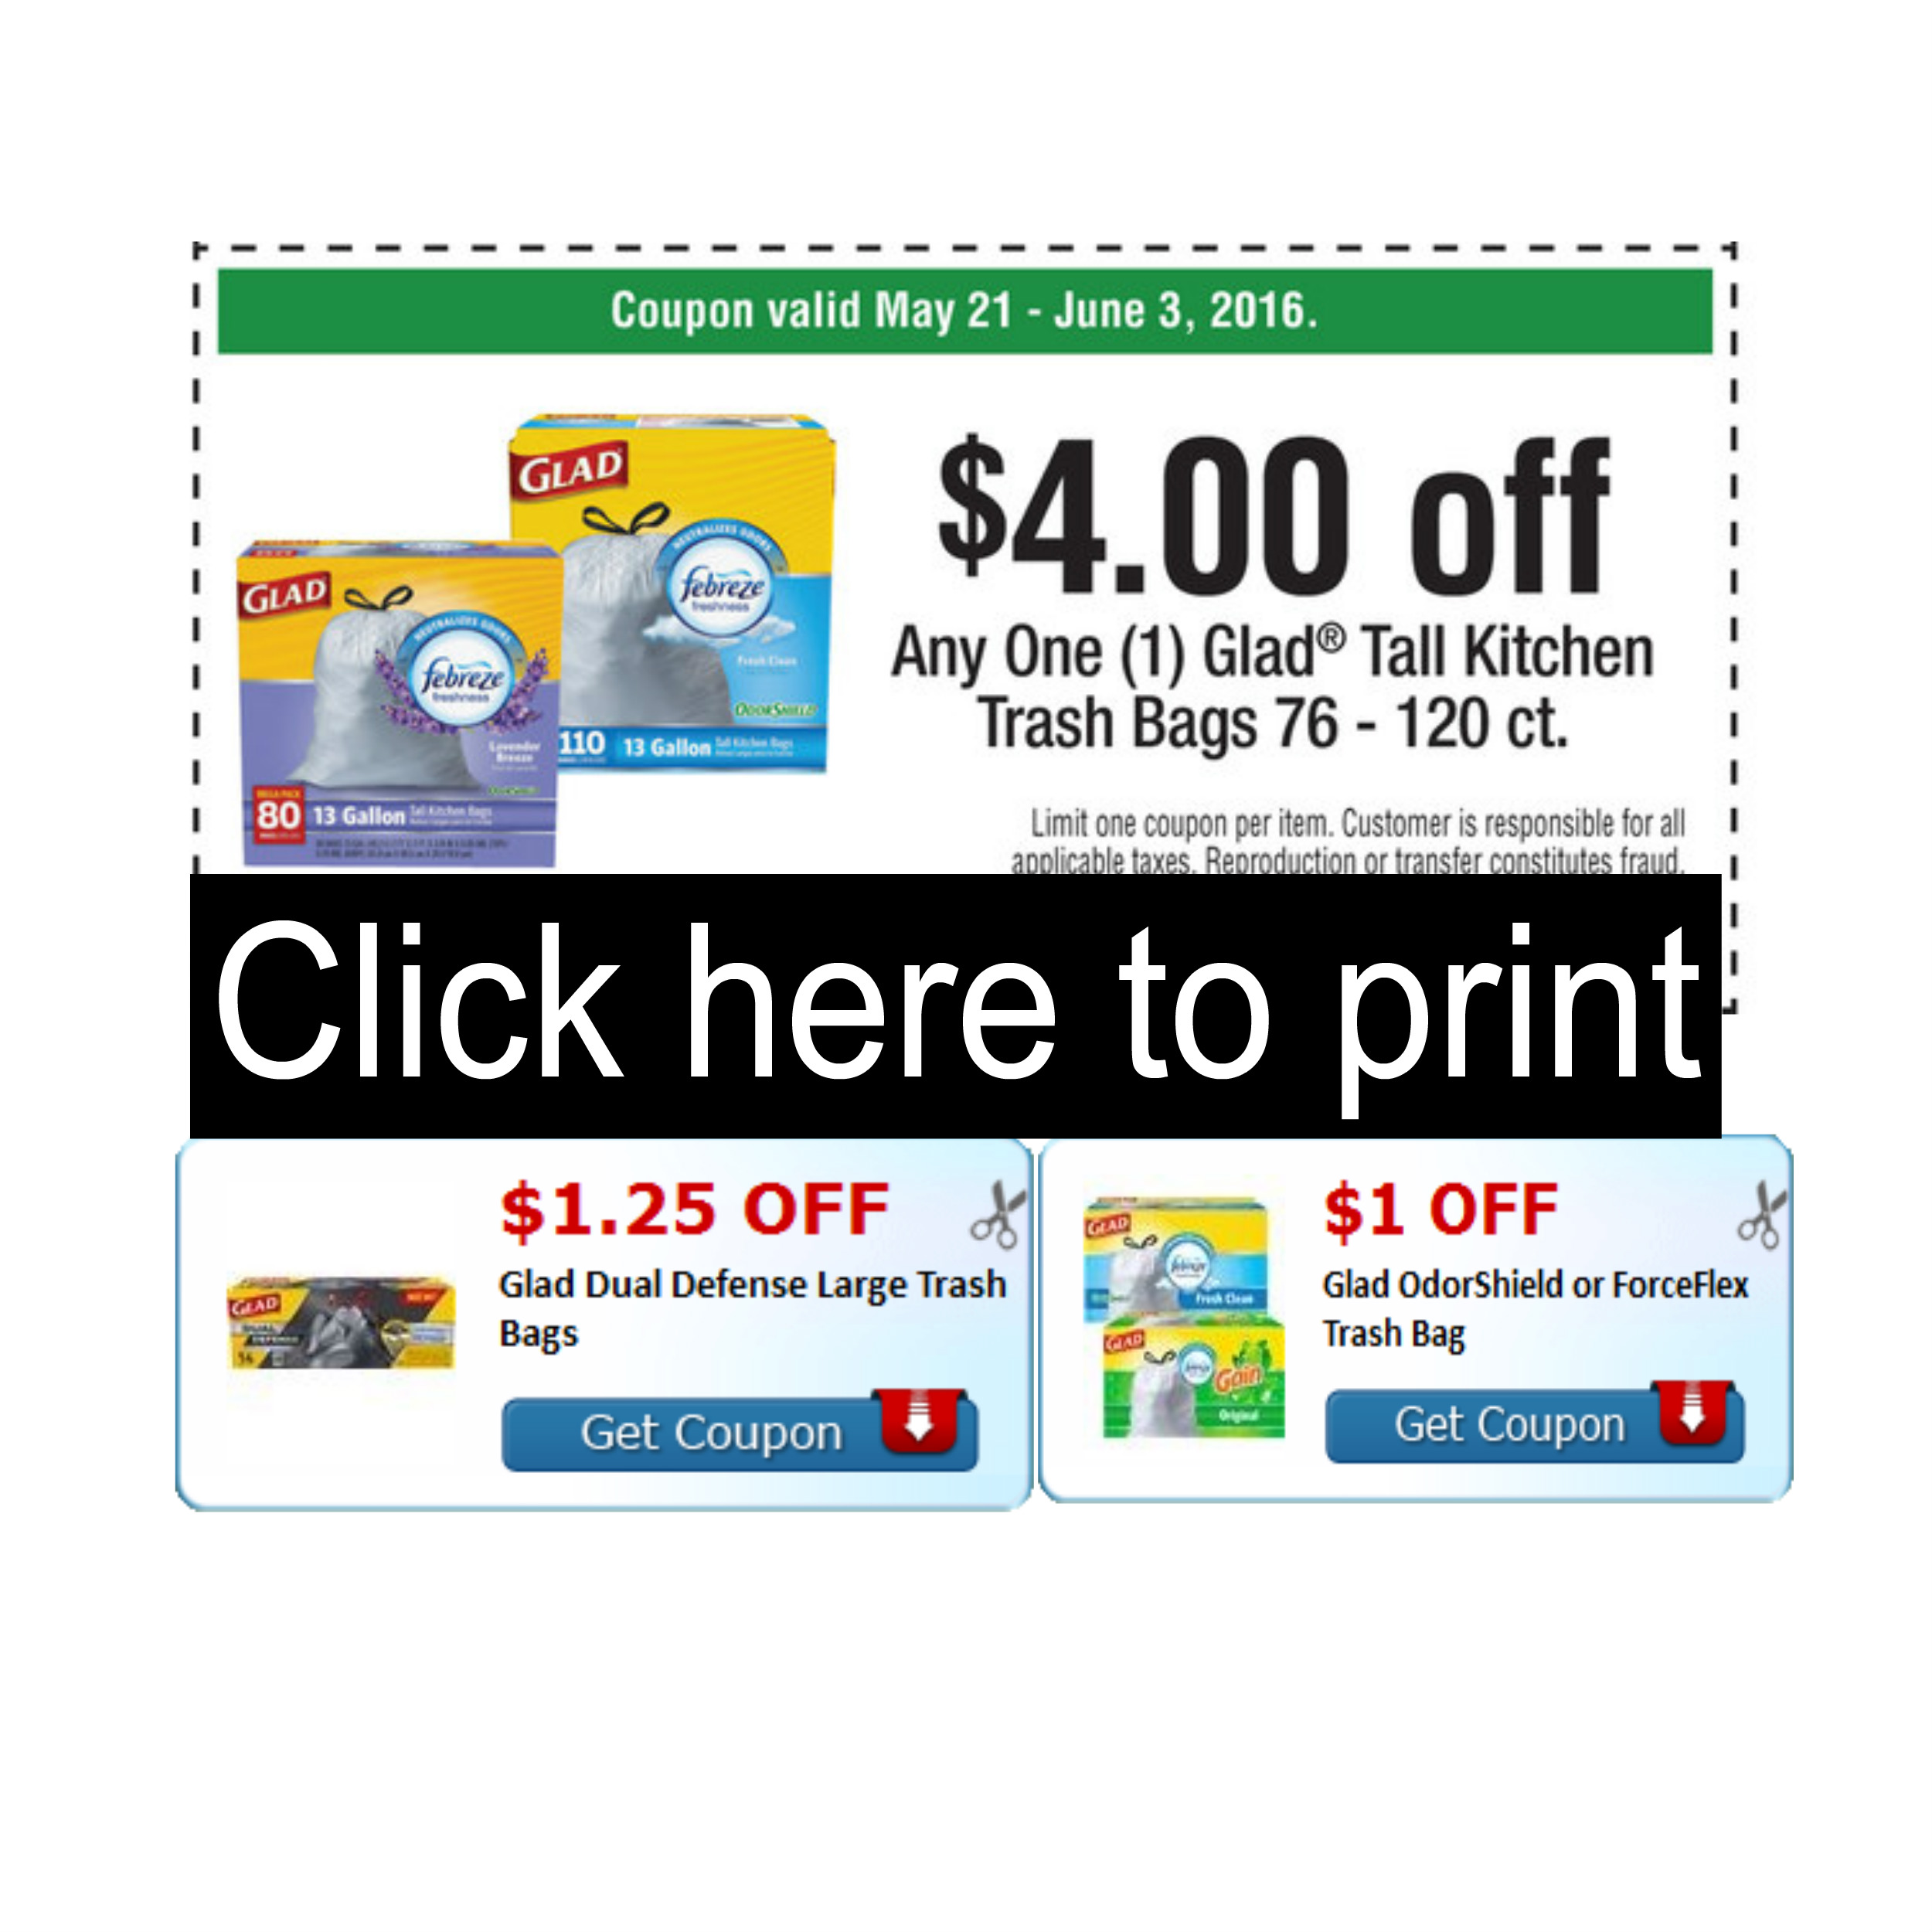 image about Glad Trash Bag Printable Coupons identified as Scorching ~ 2 fresh Happy trash baggage discount codes in direction of activity the $4 Publix